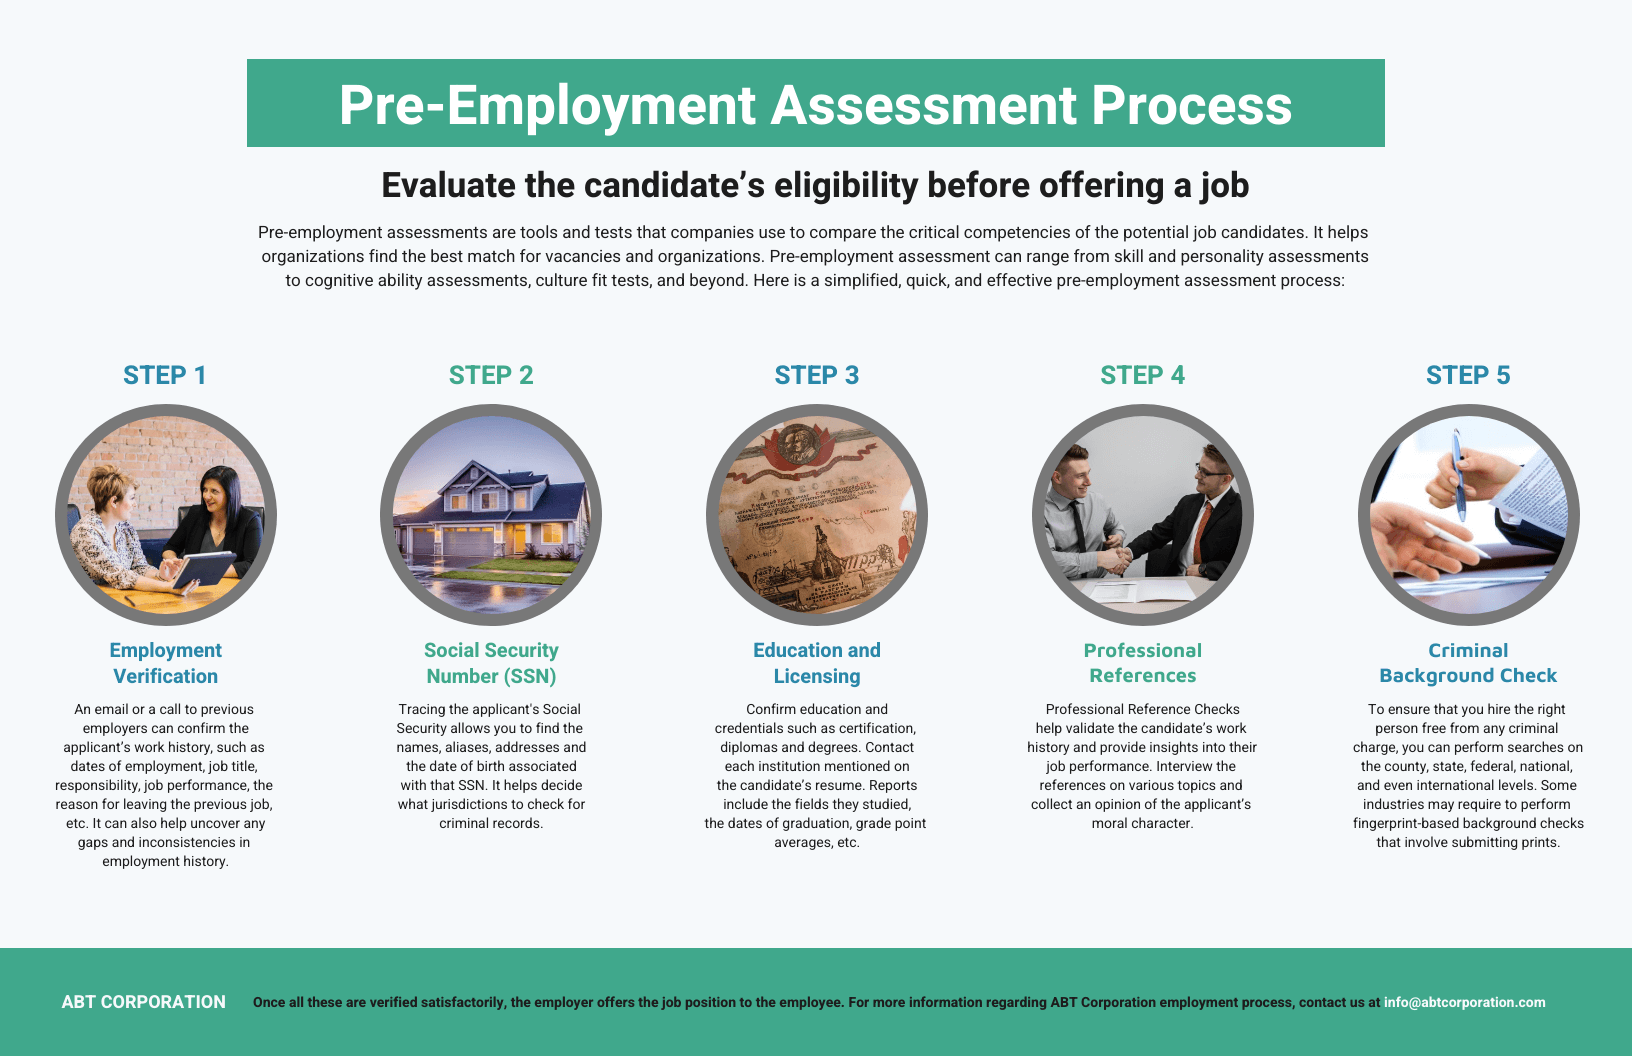 Pre-Employment Assessment Process Infographic Template